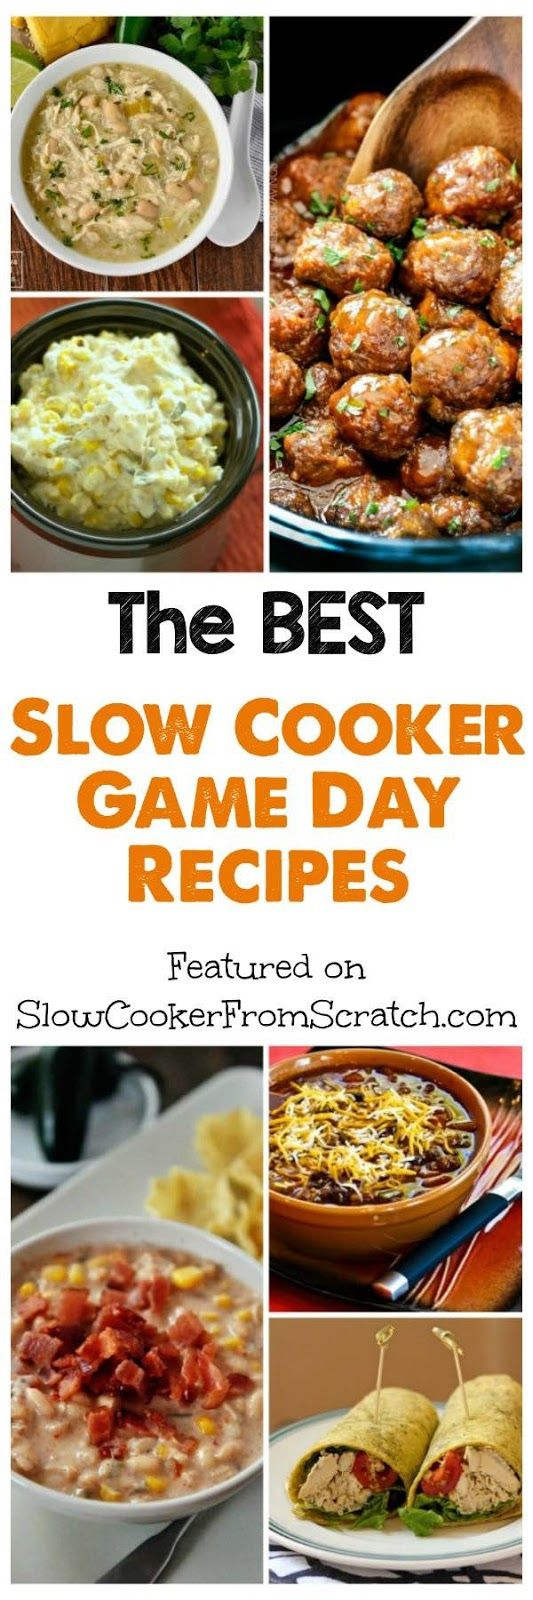 Here are The BEST Slow Cooker Game Day Recipes; using the slow cooker can make it a lot easy to create yummy food for football weekends or Superbowl parties, and this post has all the recipes you need! [found on Slow Cooker from Scratch.com]